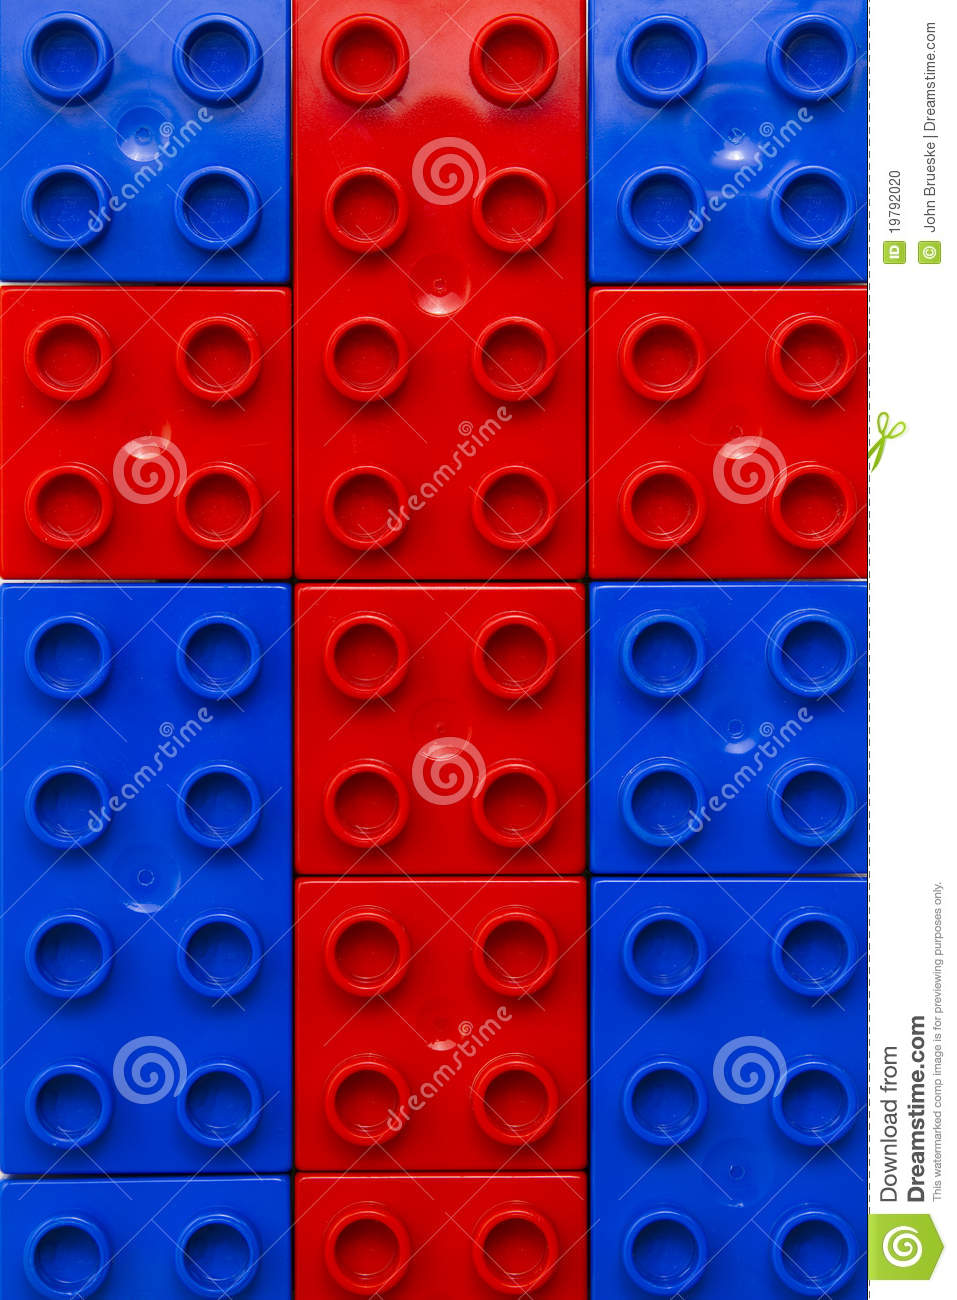 cross of legos stock photo image of plastic  duplo red cross clipart black and white red cross clip art images